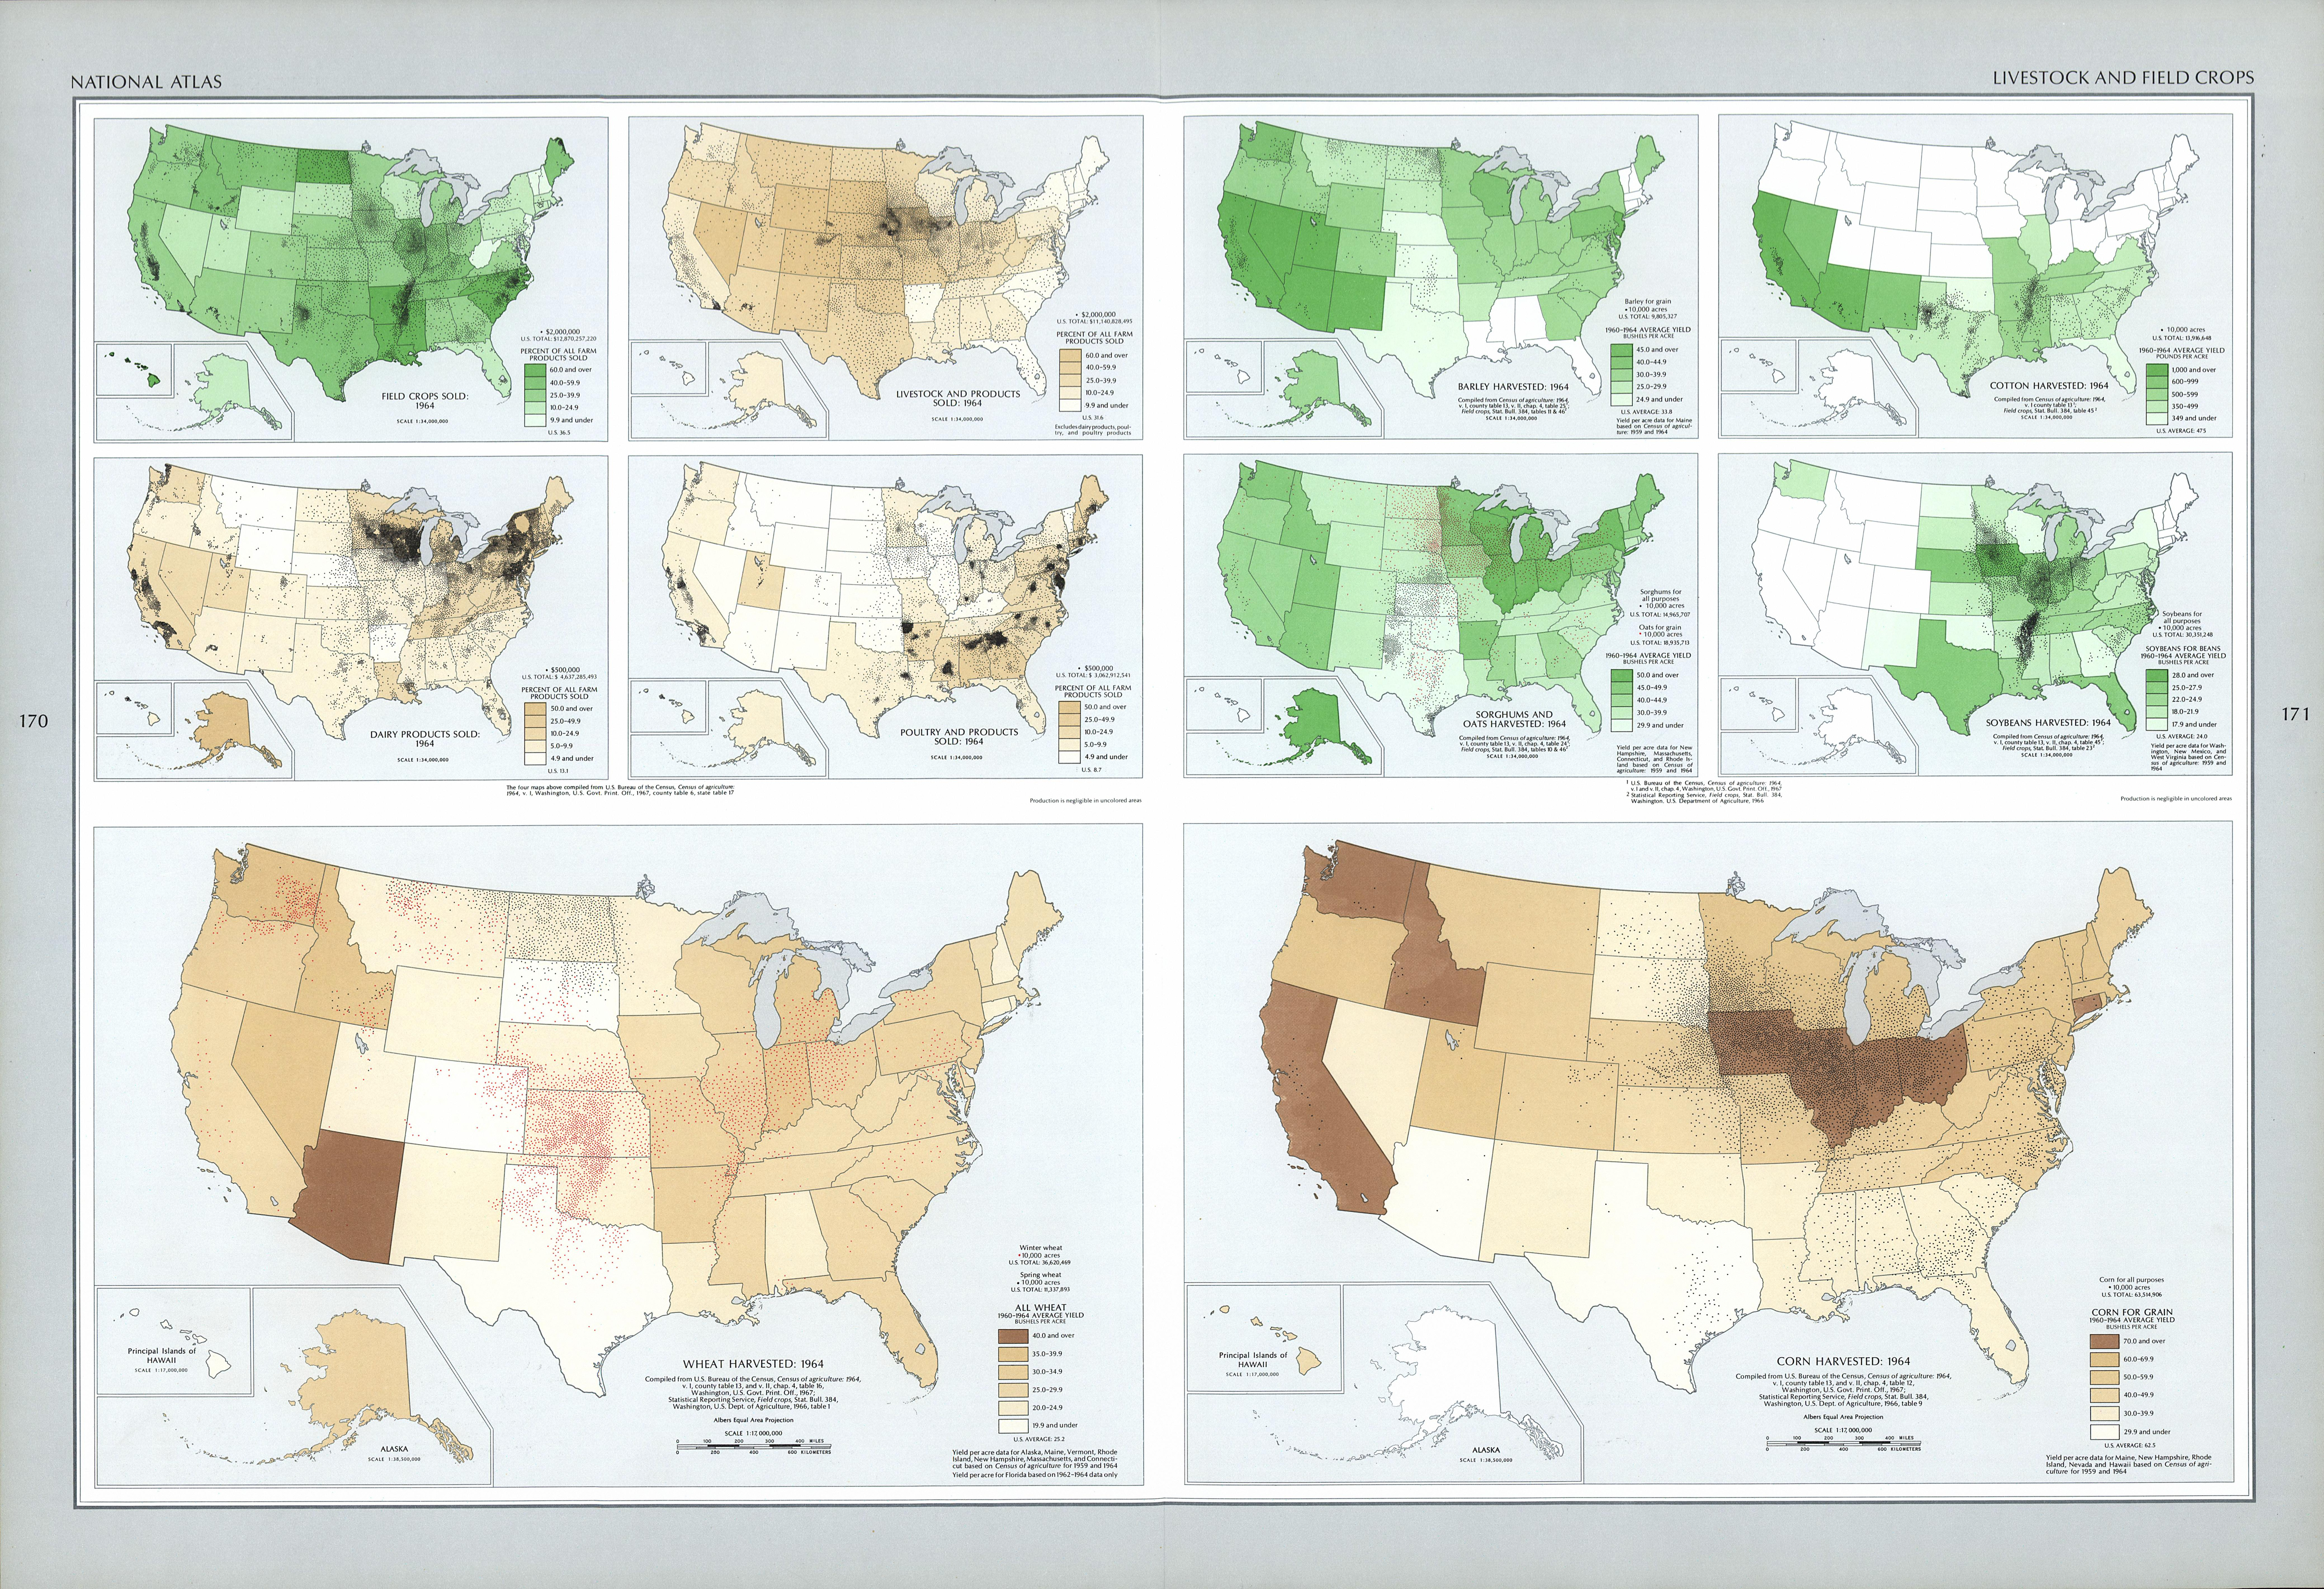 United States Livestock and Field Crops 1970